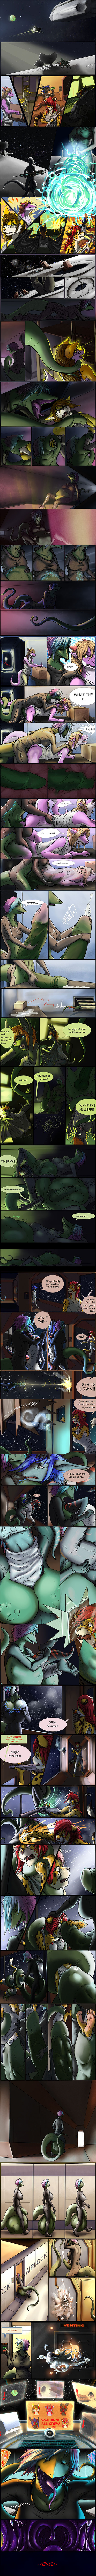 dinosaur's a story re elsa back we Five nights at freddys anime